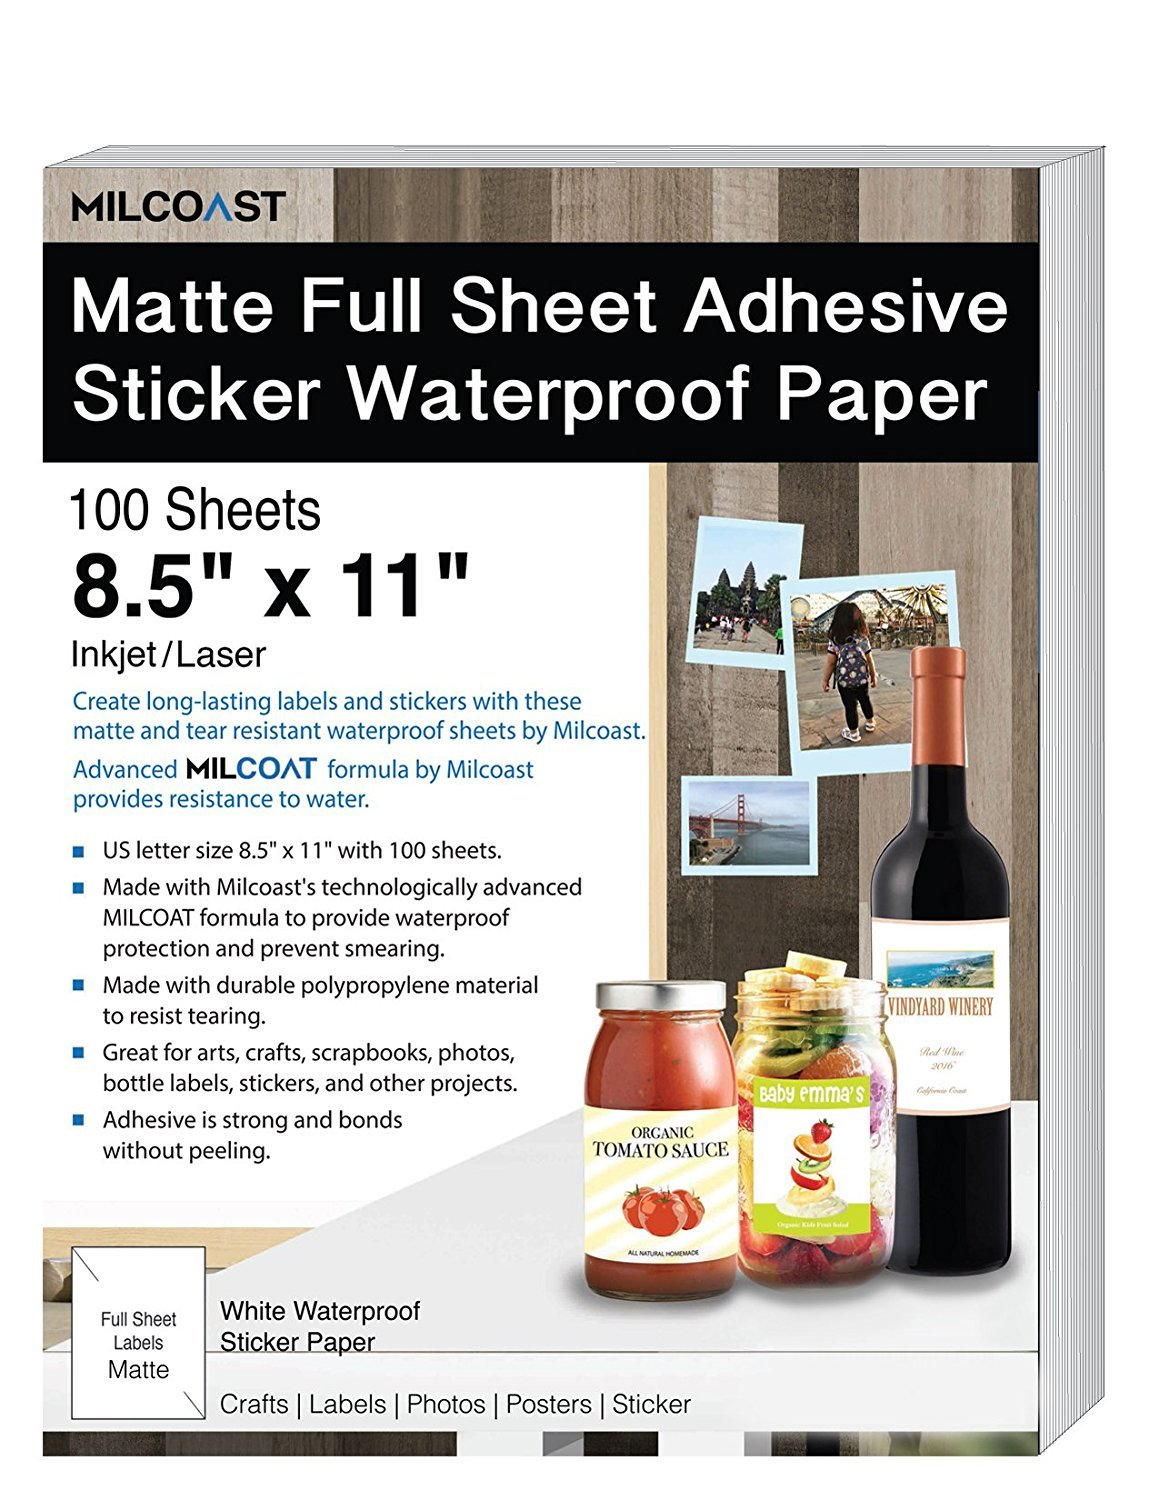 Milcoast Matte Full Sheet 8.5 x 11'' Adhesive Tear Resistant Waterproof Photo Craft Paper - for Inkjet/Laser Printers - for Stickers, Labels, Scrapbooks, Bottles, Arts, Crafts (100 Sheets)